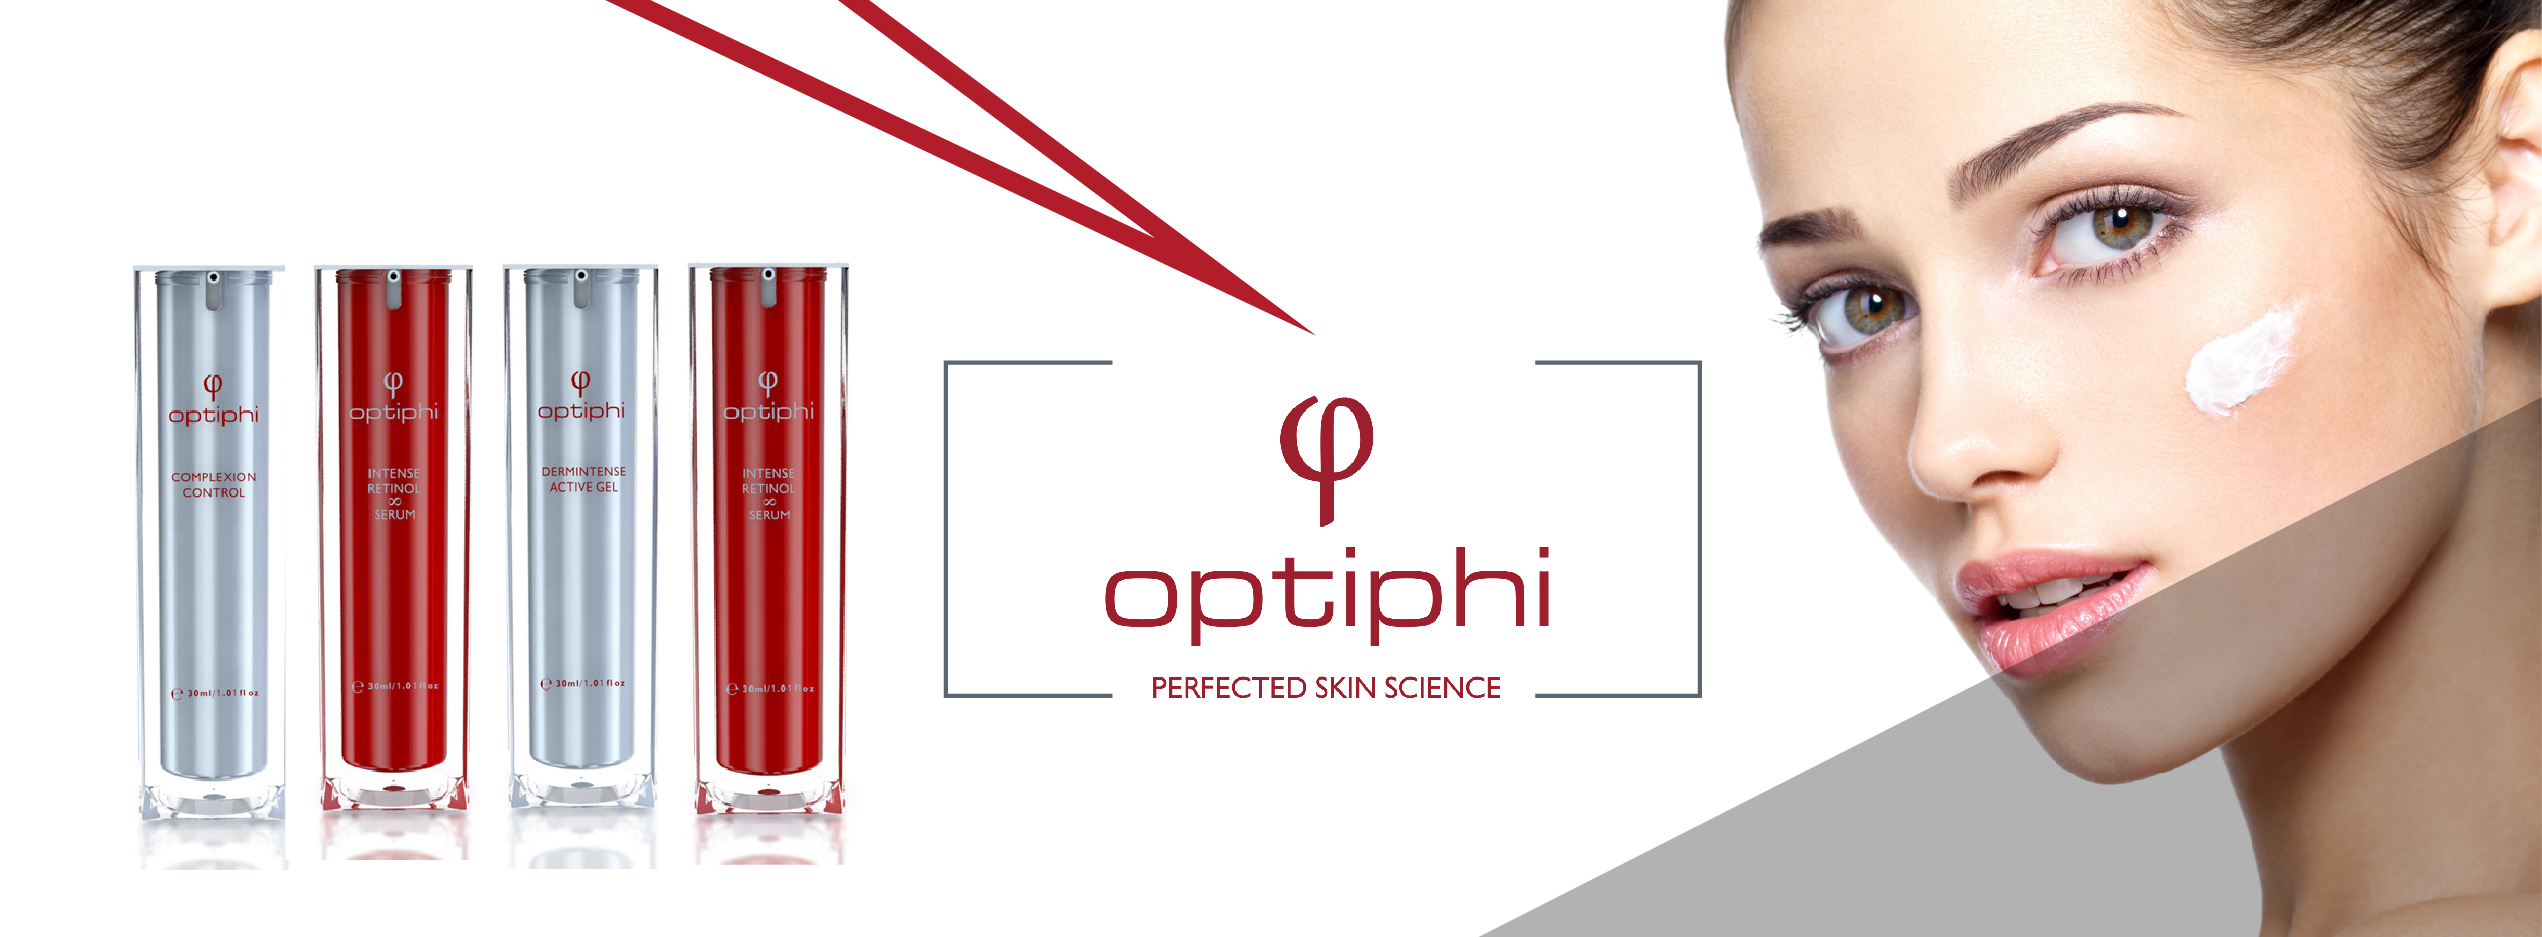 optiphi skin care range